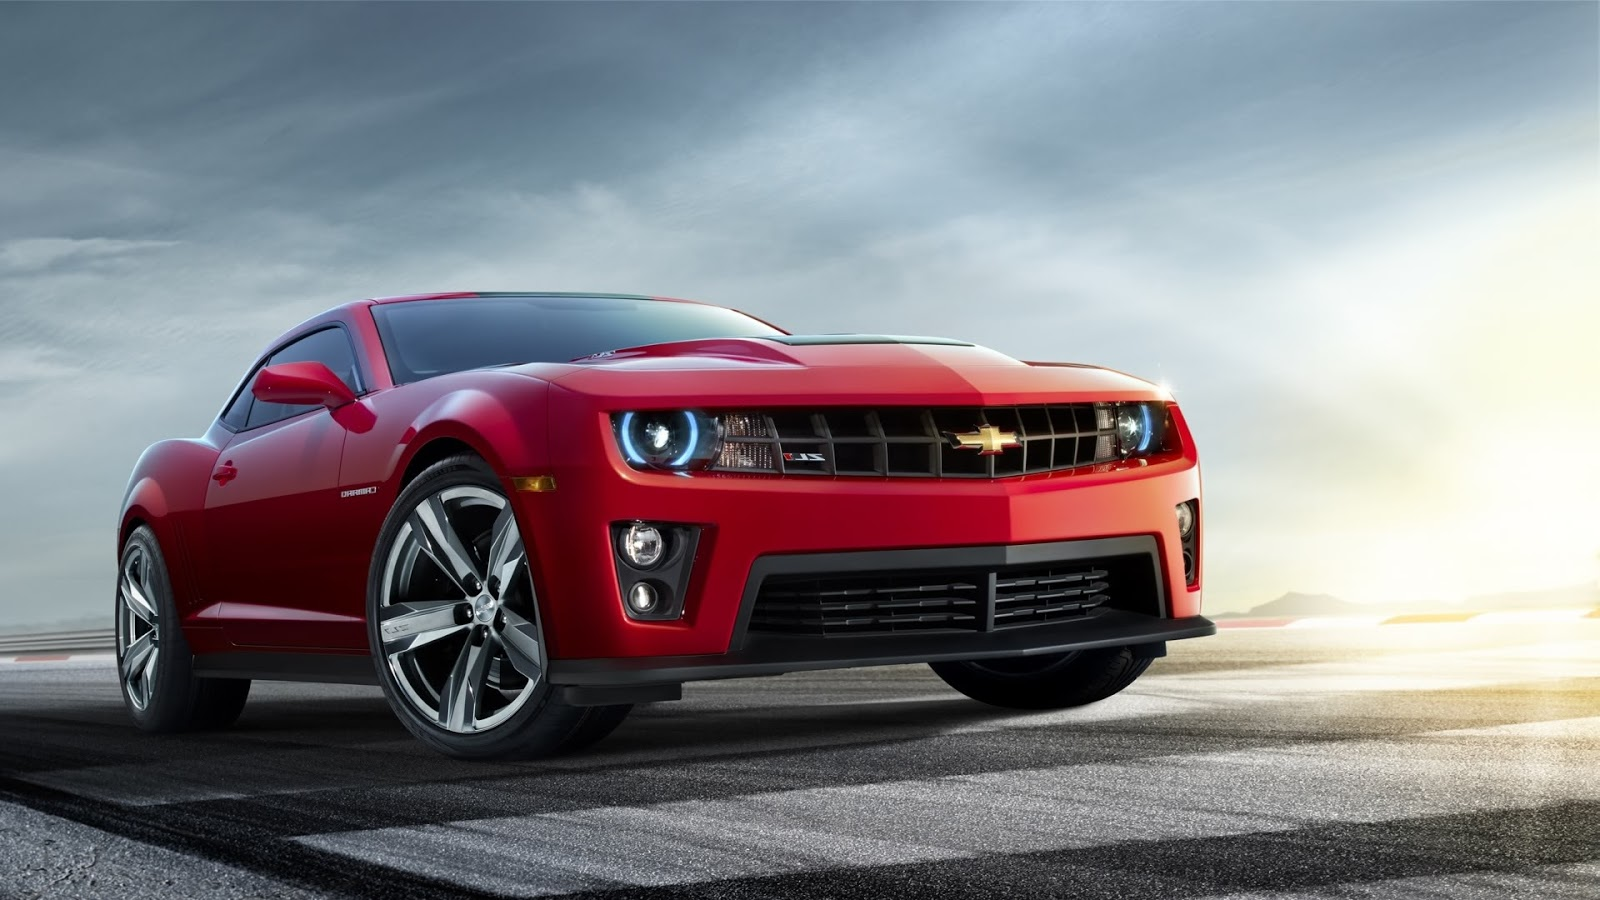 2012 Chevrolet Camaro Zl1 Chicago Auto Wallpapers Big HD Wallpaper 1600x900